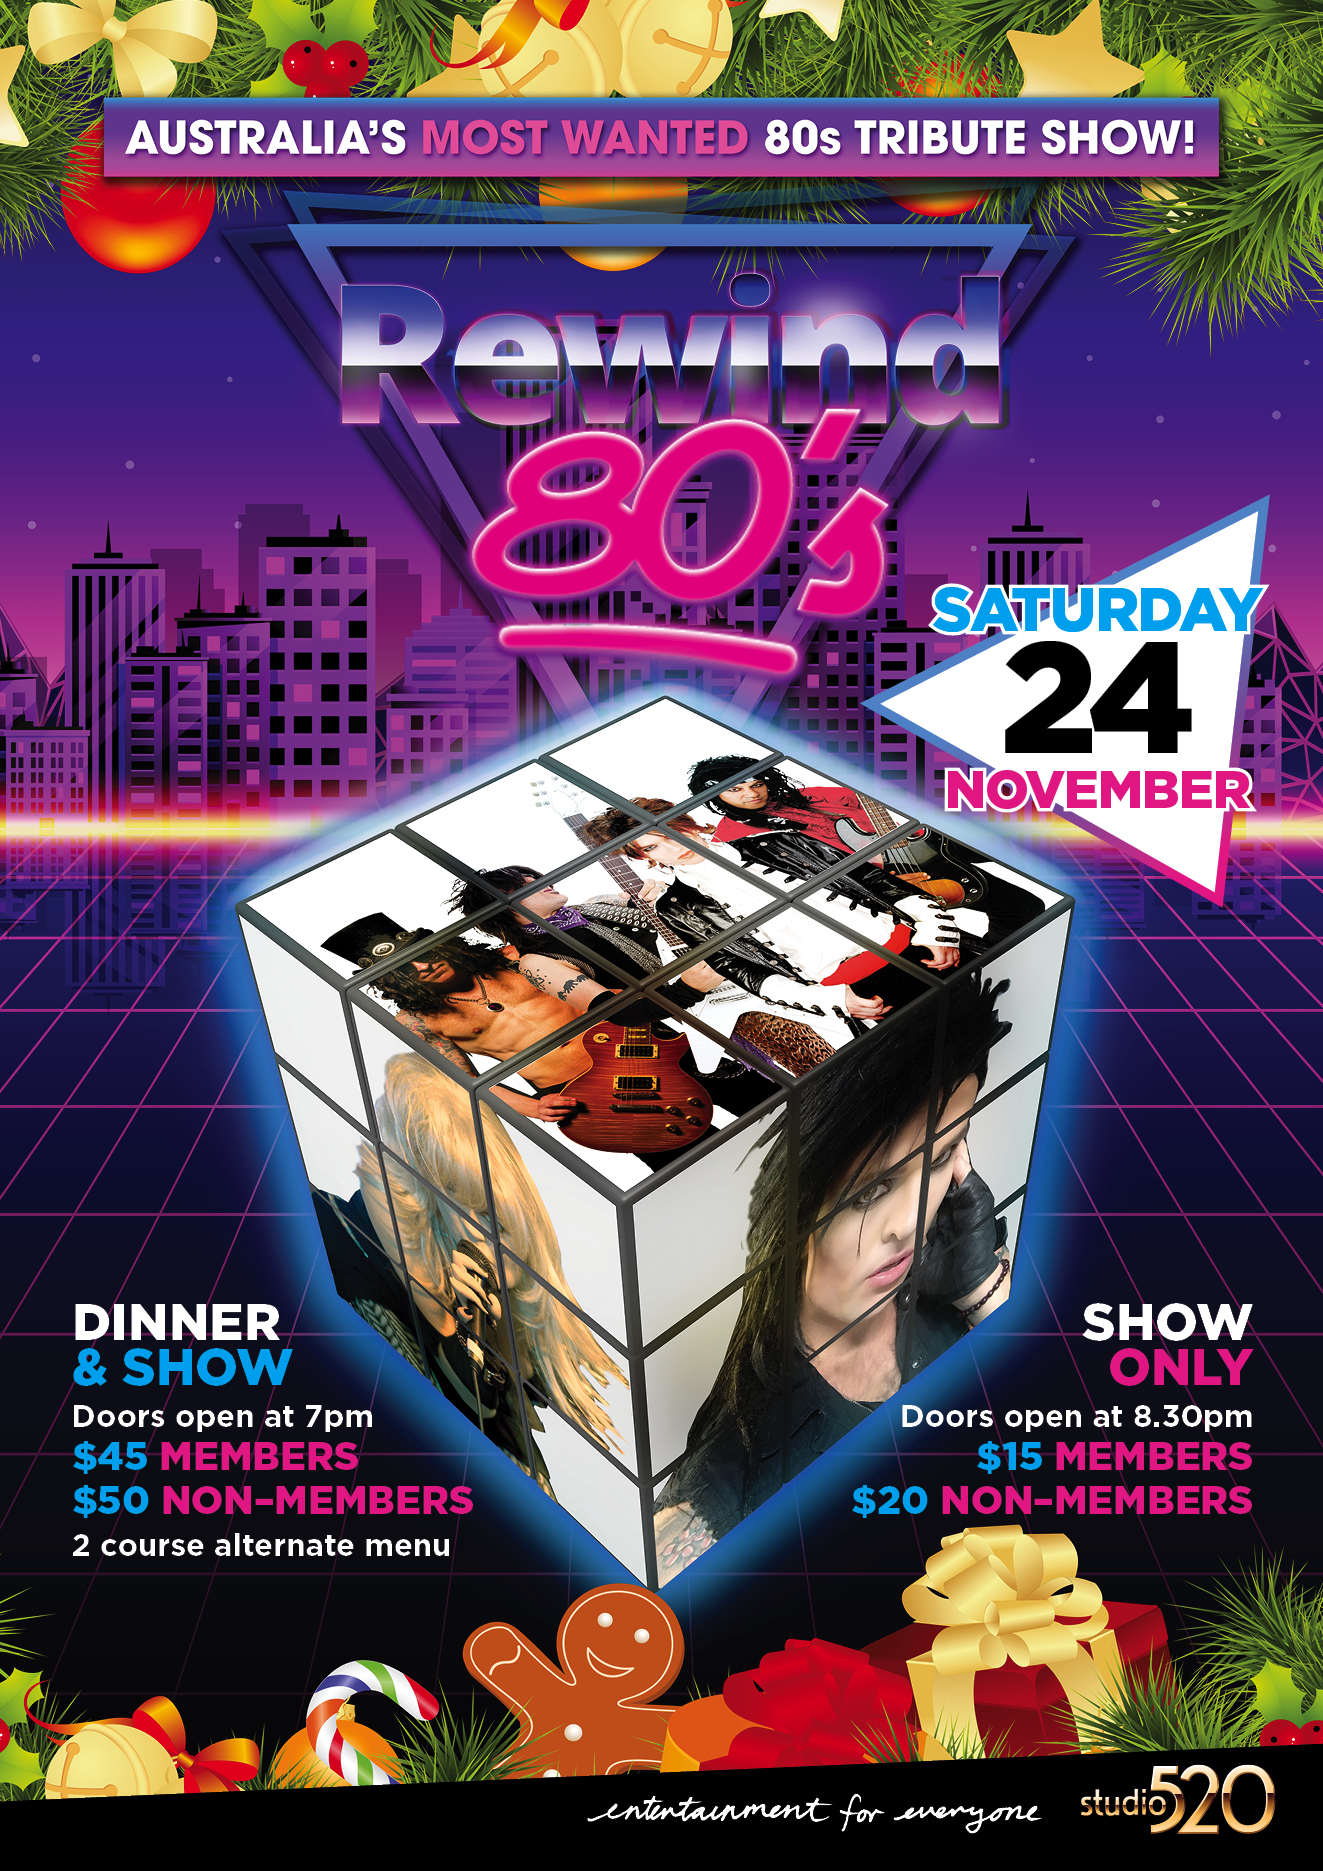 Studio520_Rewind 80s 24NOV proof 2